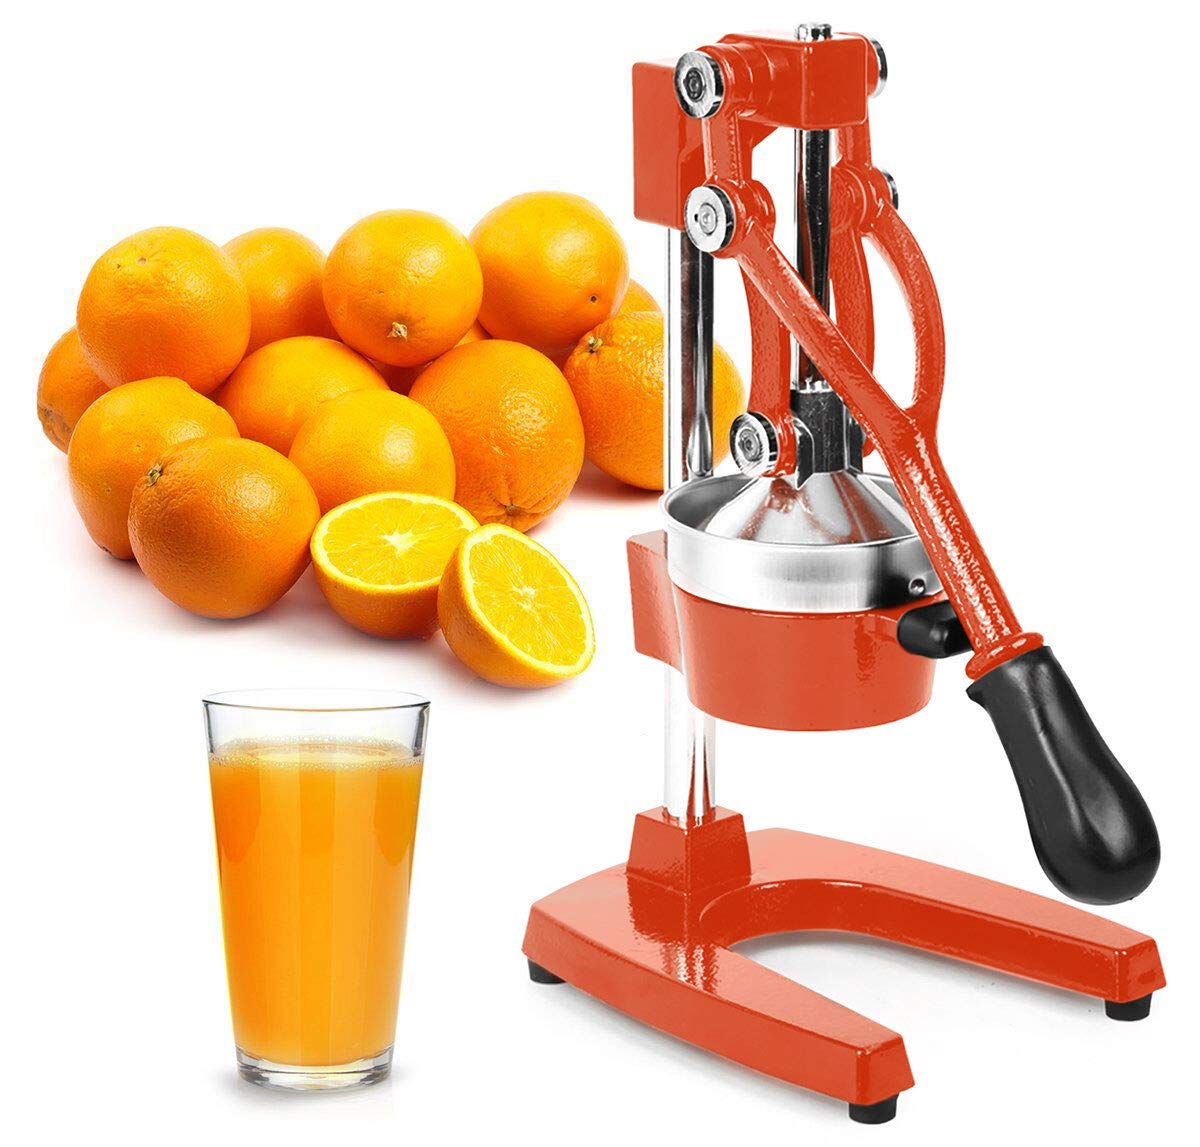 Zulay Professional Citrus Juicer - Manual Citrus Press and Orange Squeezer - Metal Lemon Squeezer - Premium Quality Heavy Duty Manual Orange Juicer and Lime Squeezer Press Stand, Orange